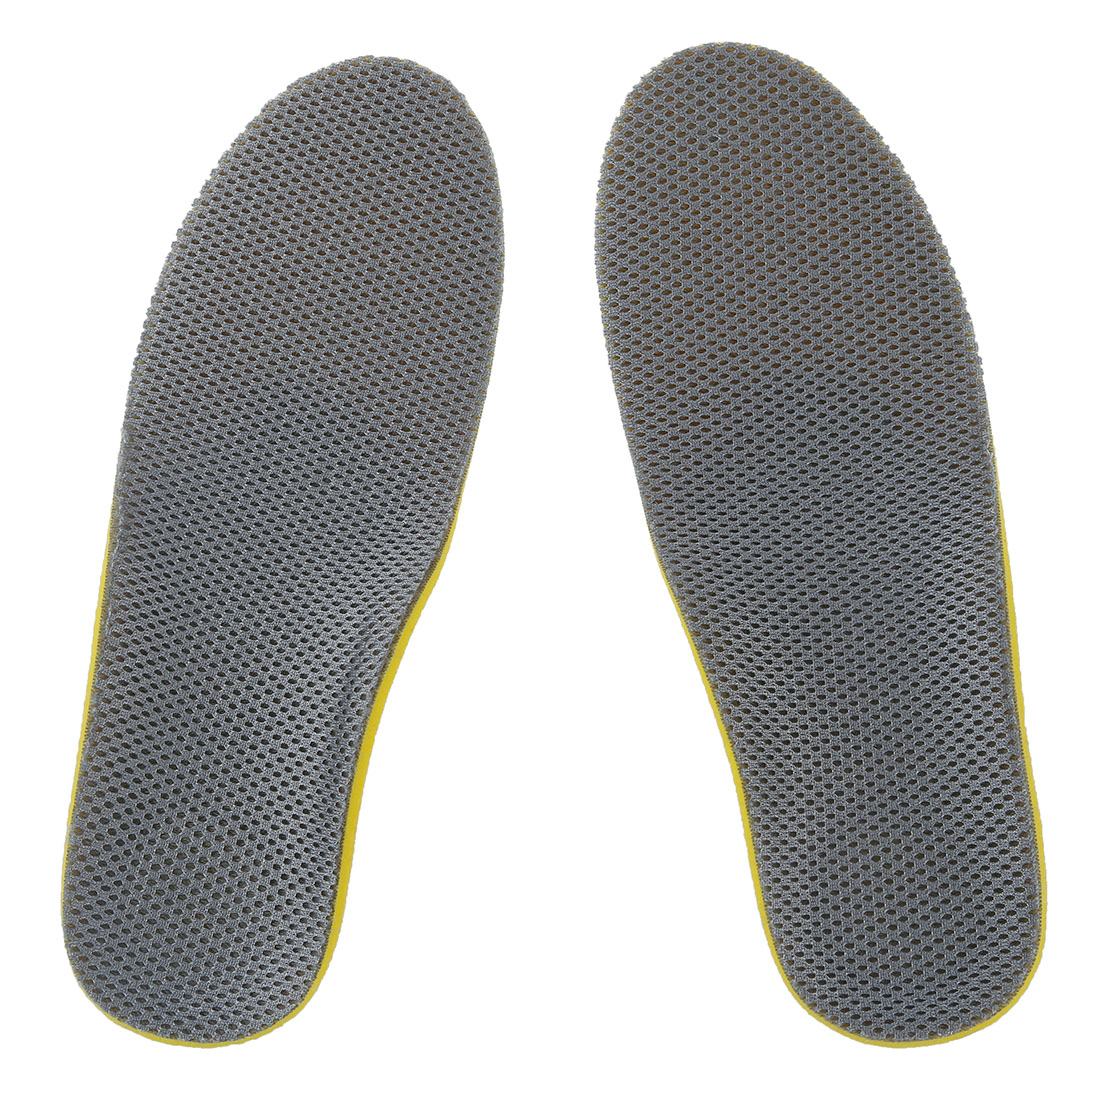 Fashion Boutique Comfortable Orthotic Shoes Insoles Inserts High Arch Support Pad expfoot orthotic arch support shoe pad orthopedic insoles pu insoles for shoes breathable foot pads massage sport insole 045